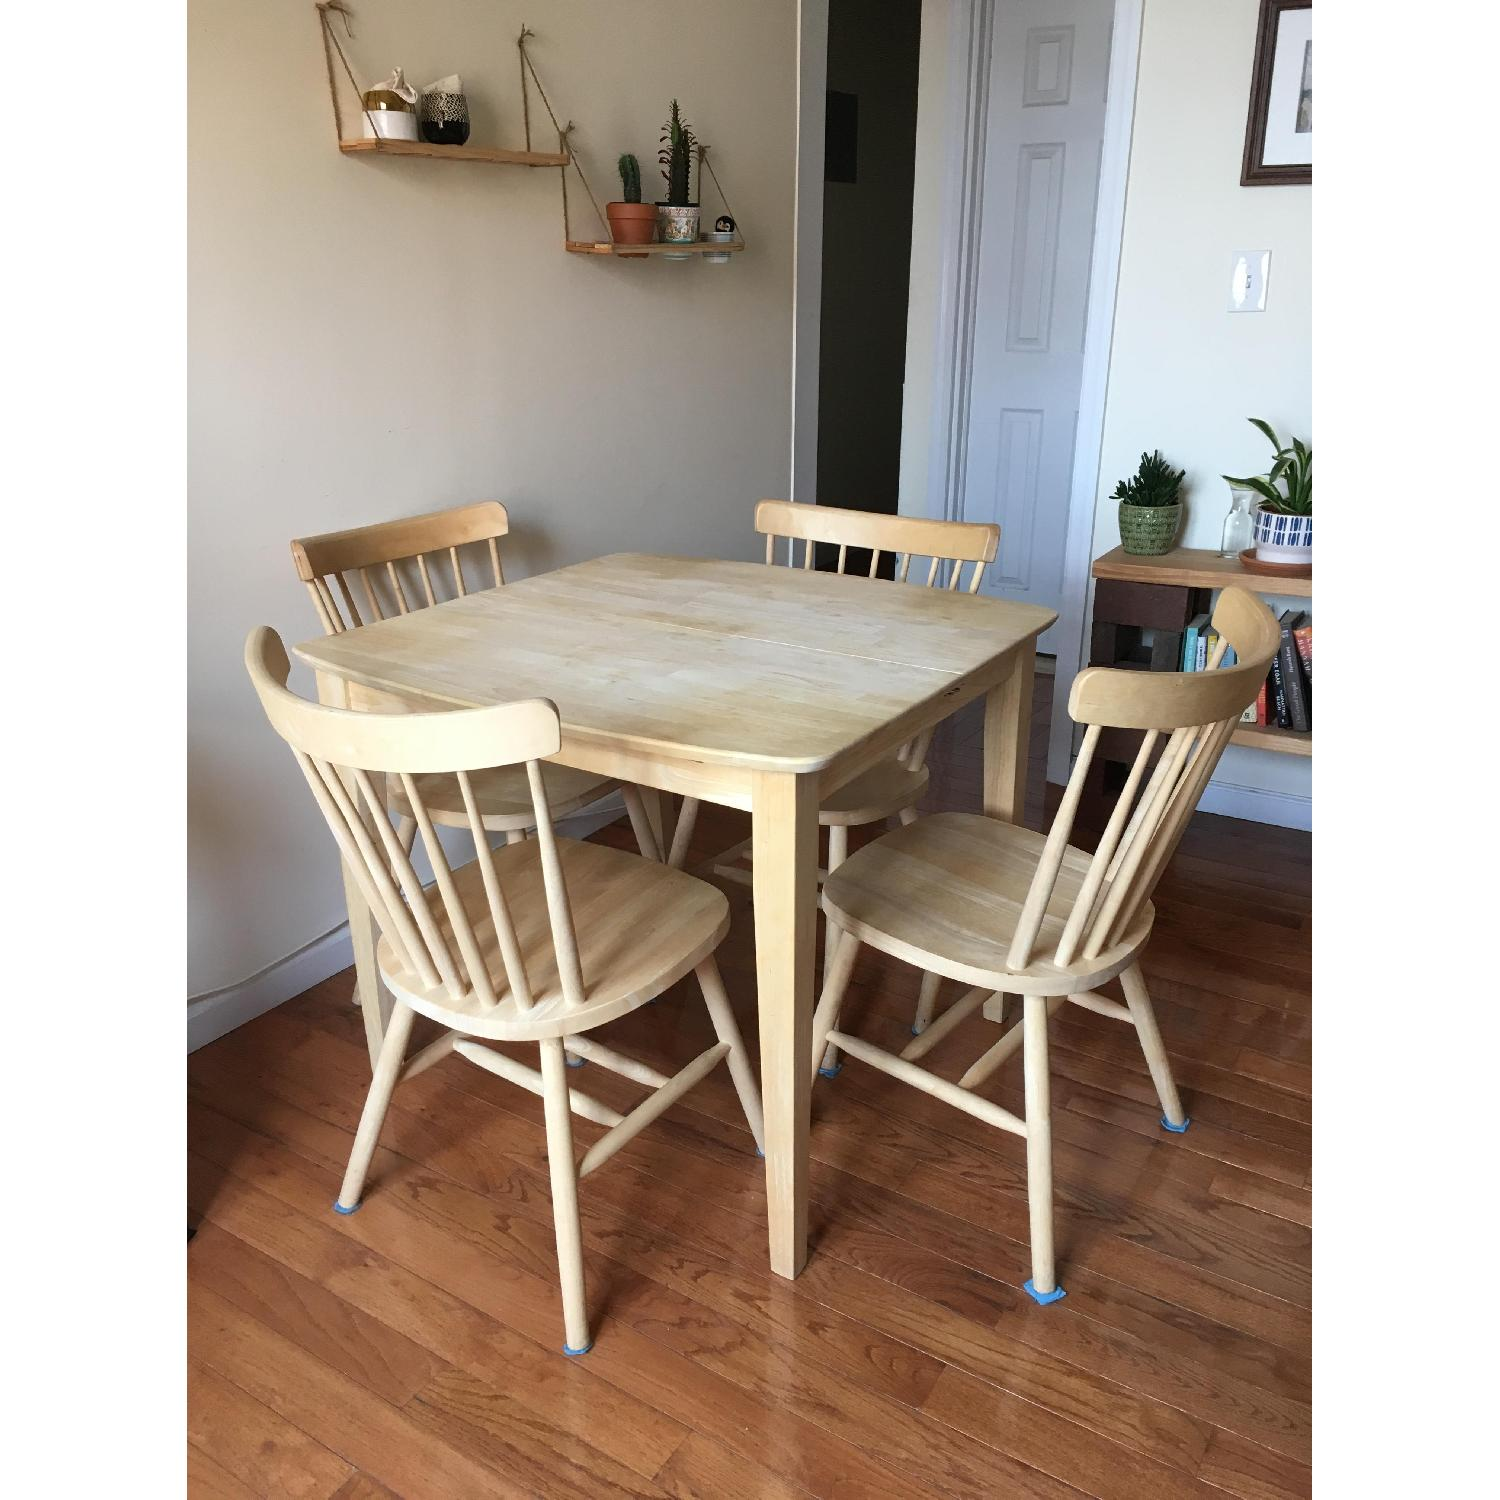 International Concepts Unfinished Wood Table w/ 4 Chairs - image-1